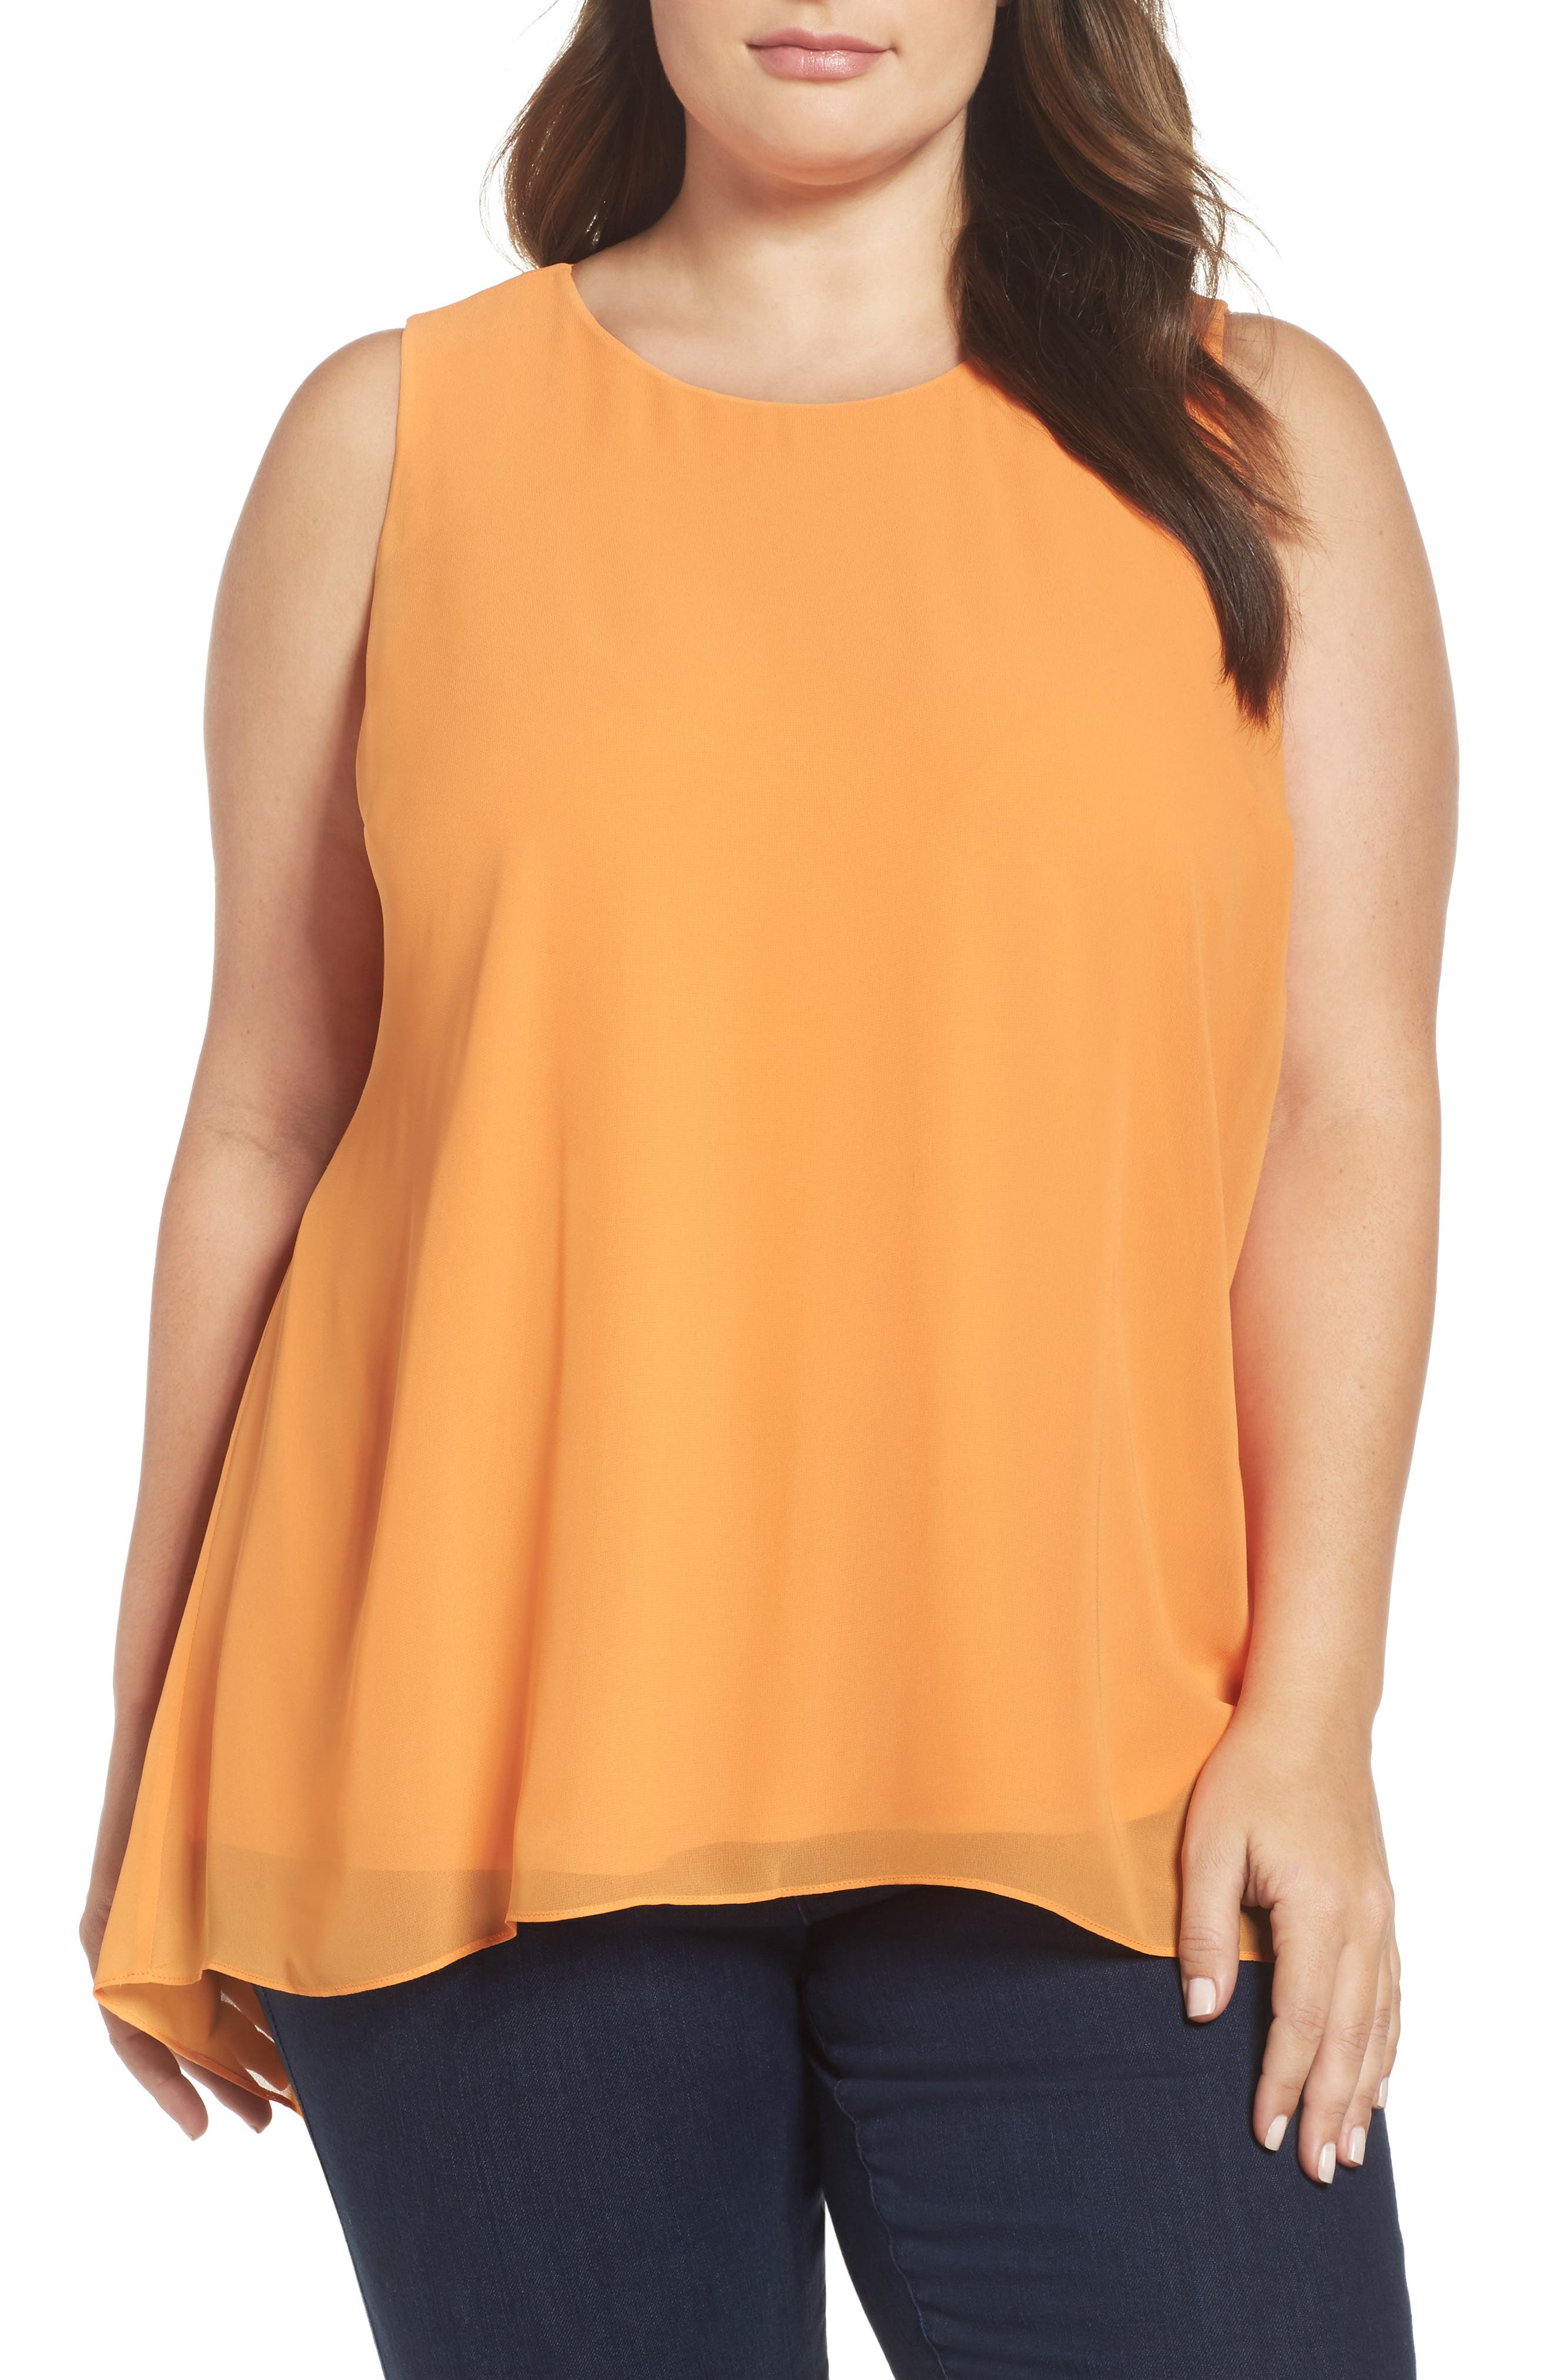 Alternate Image 1 Selected - Vince Camuto Knit Lined High/Low Blouse